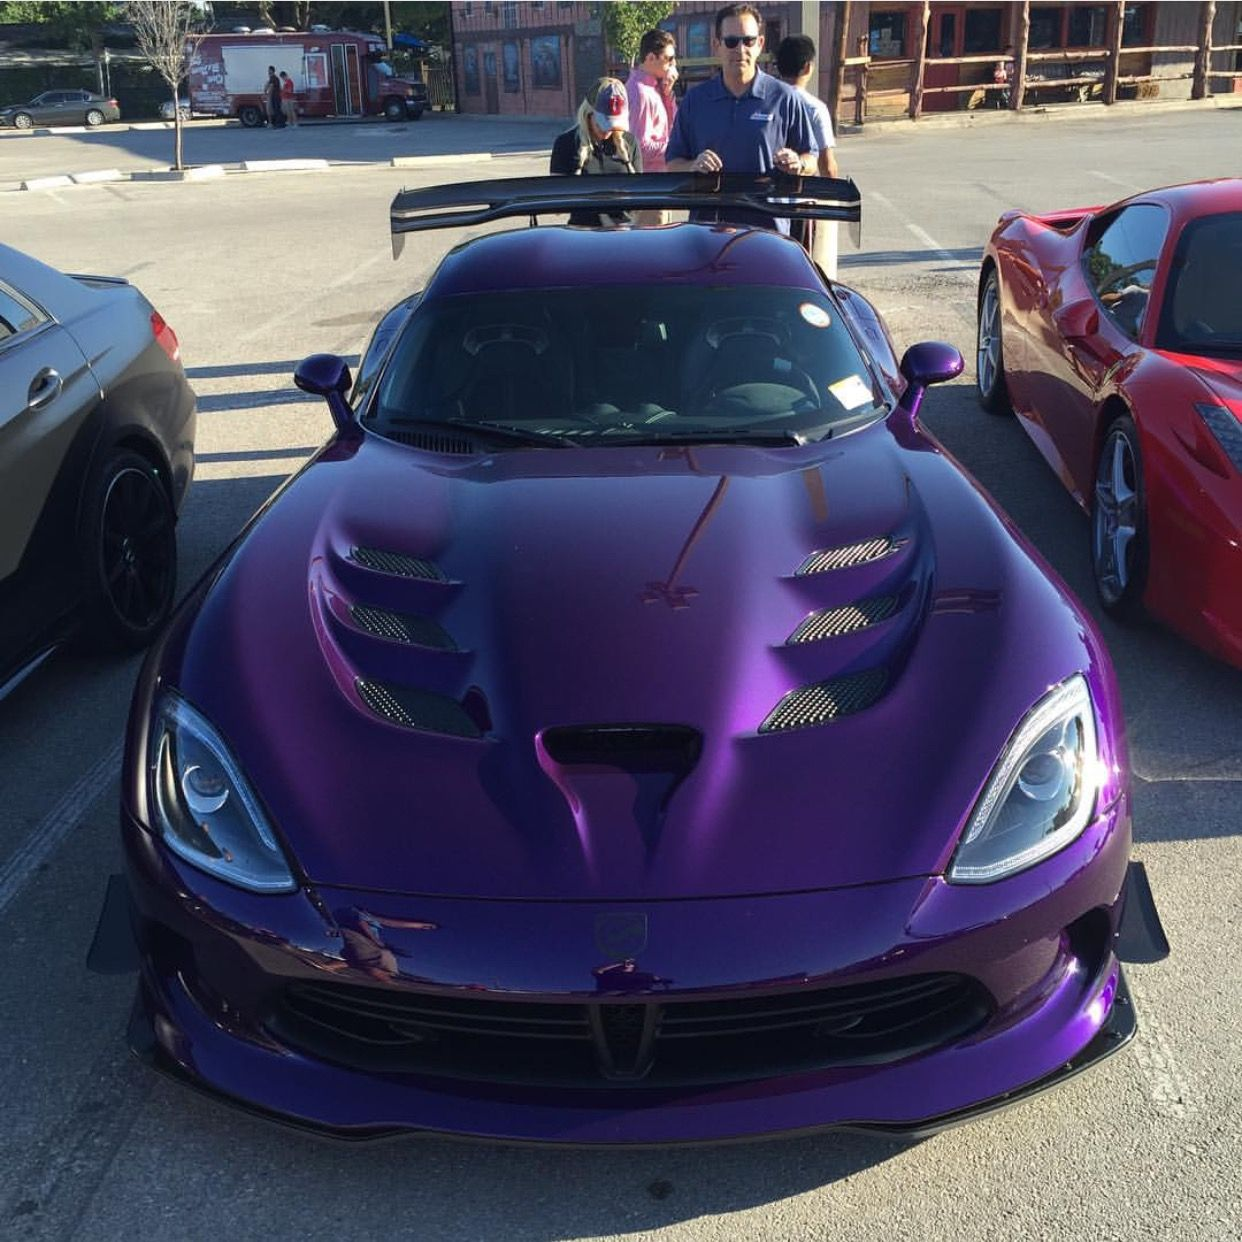 Dodge Srt Viper Acr Painted In Metallic Purple Photo Taken By Cernok Photography On Instagram Dodge Viper Cool Sports Cars Super Cars